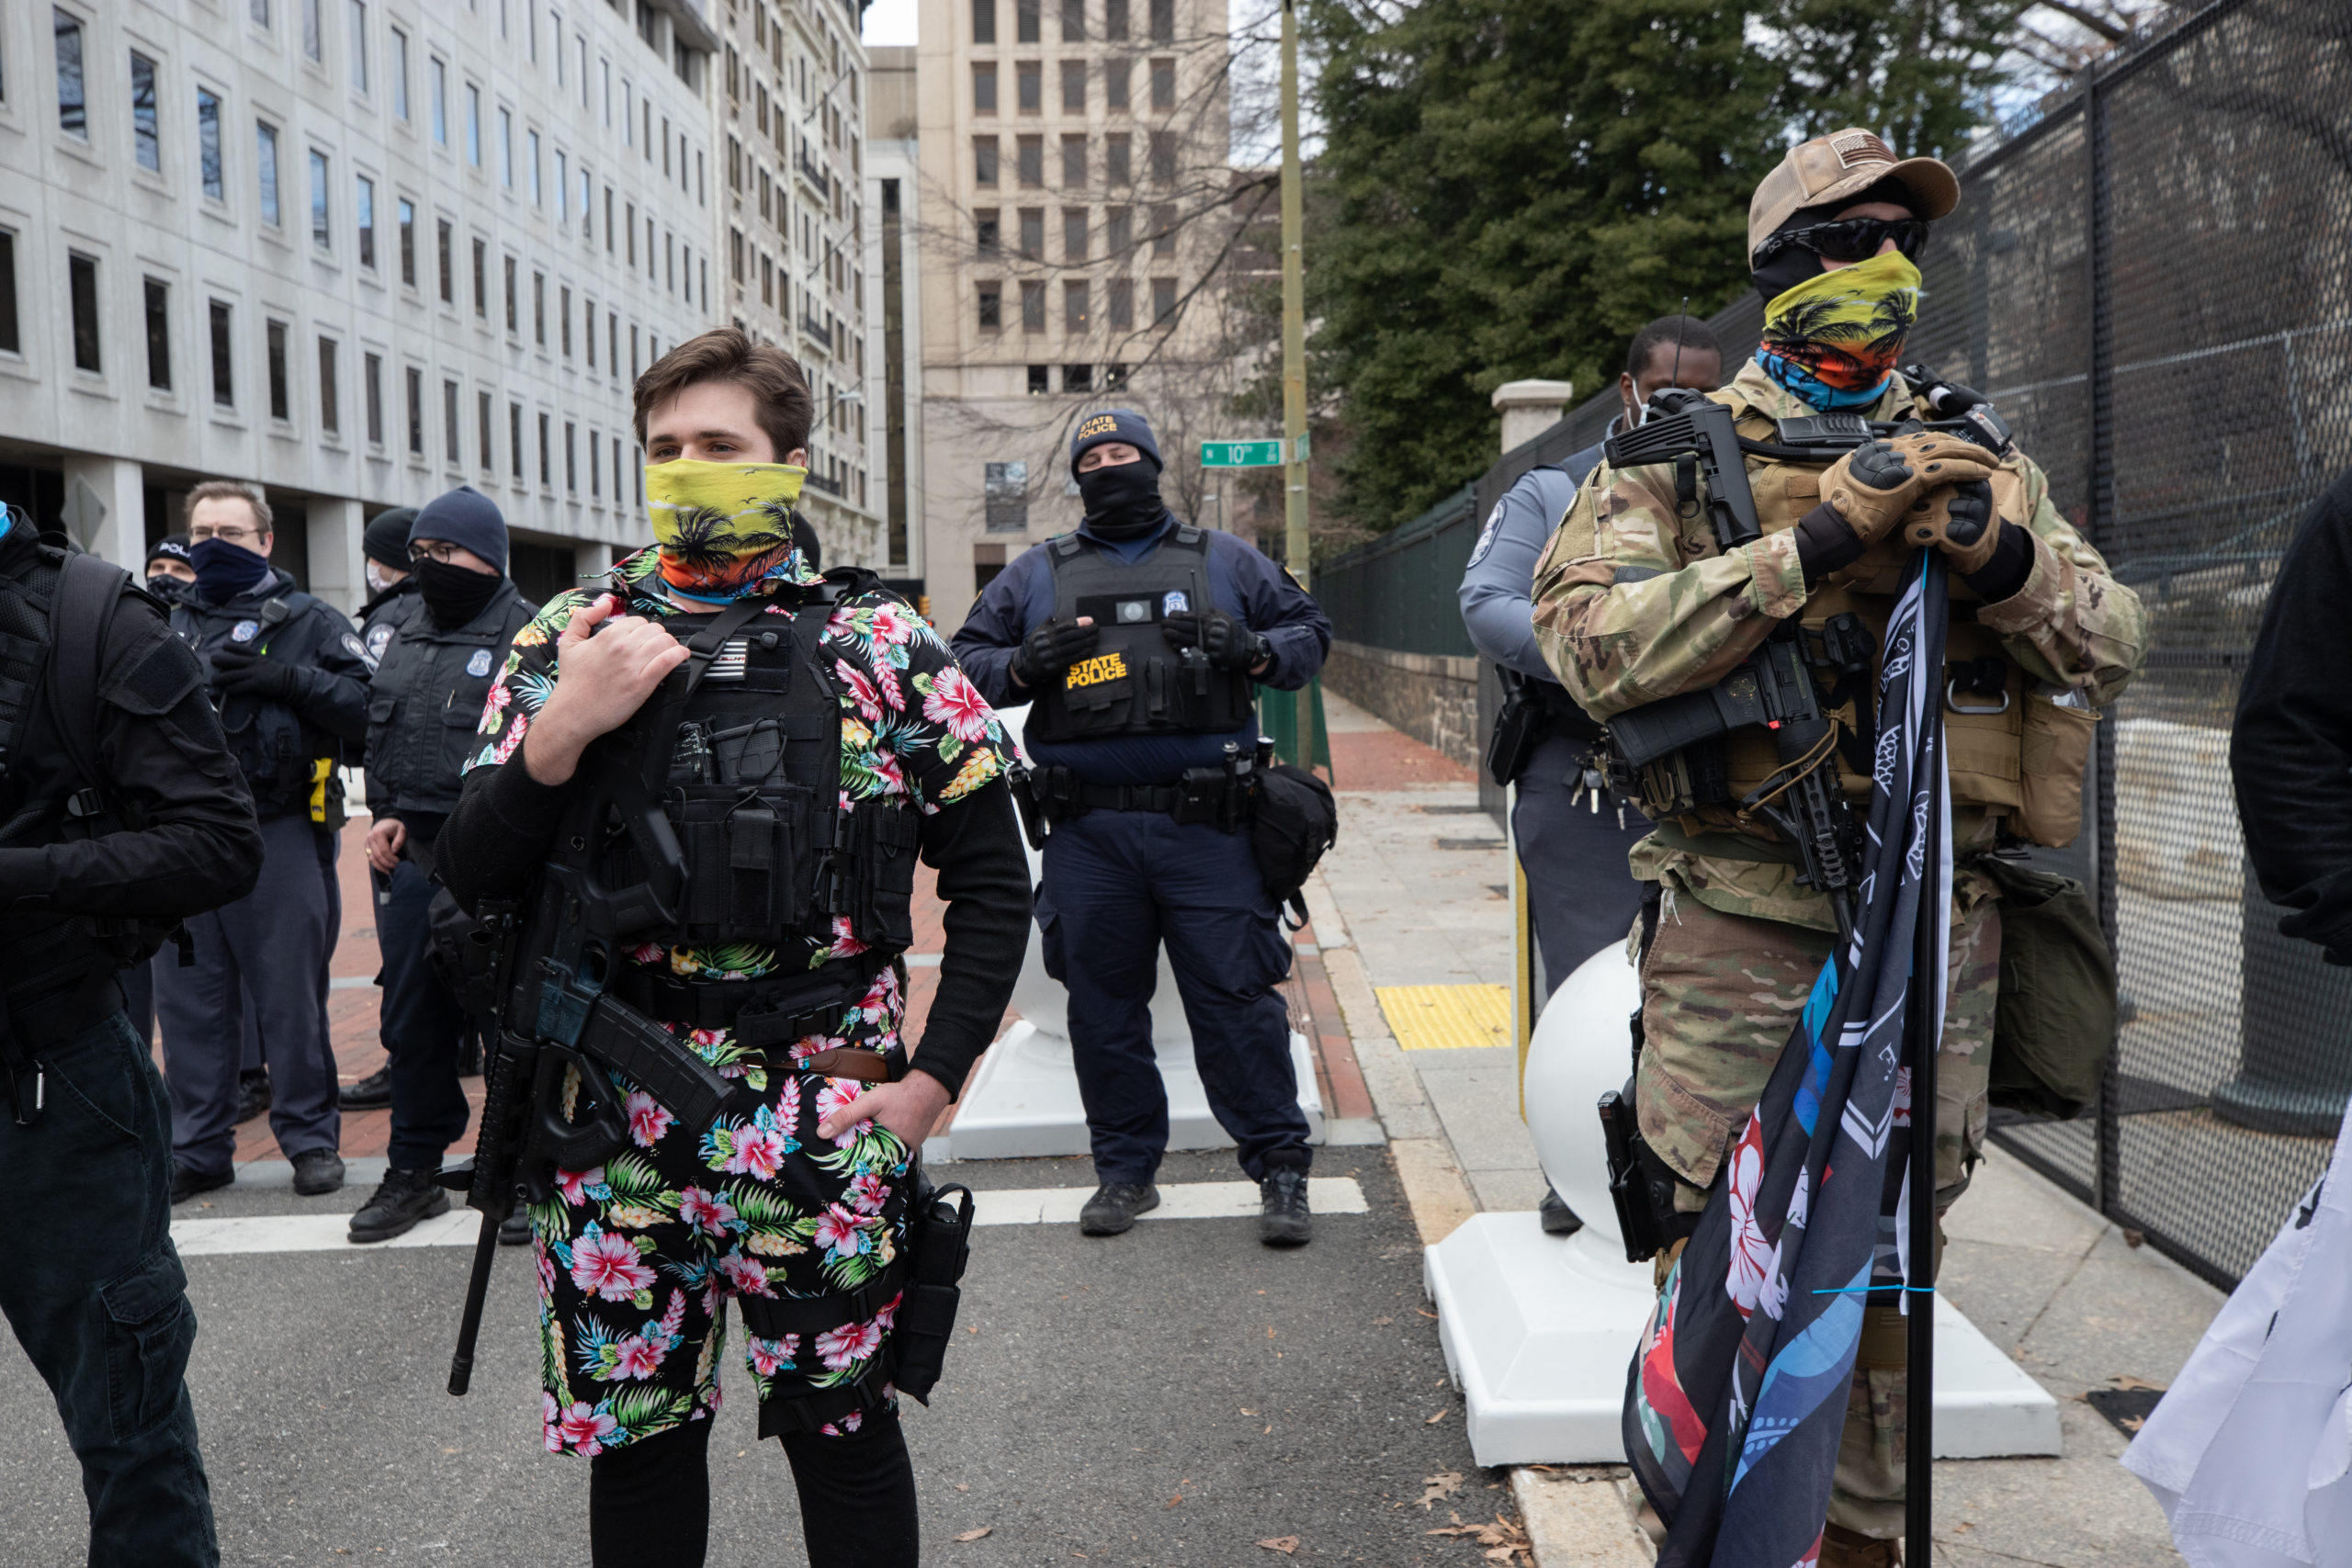 Two Boogaloo Bois stand in a line in front of the police line outside the state capitol building in Richmond, Virginia on January 18, 2021. (Kaylee Greenlee - Daily Caller News Foundation)